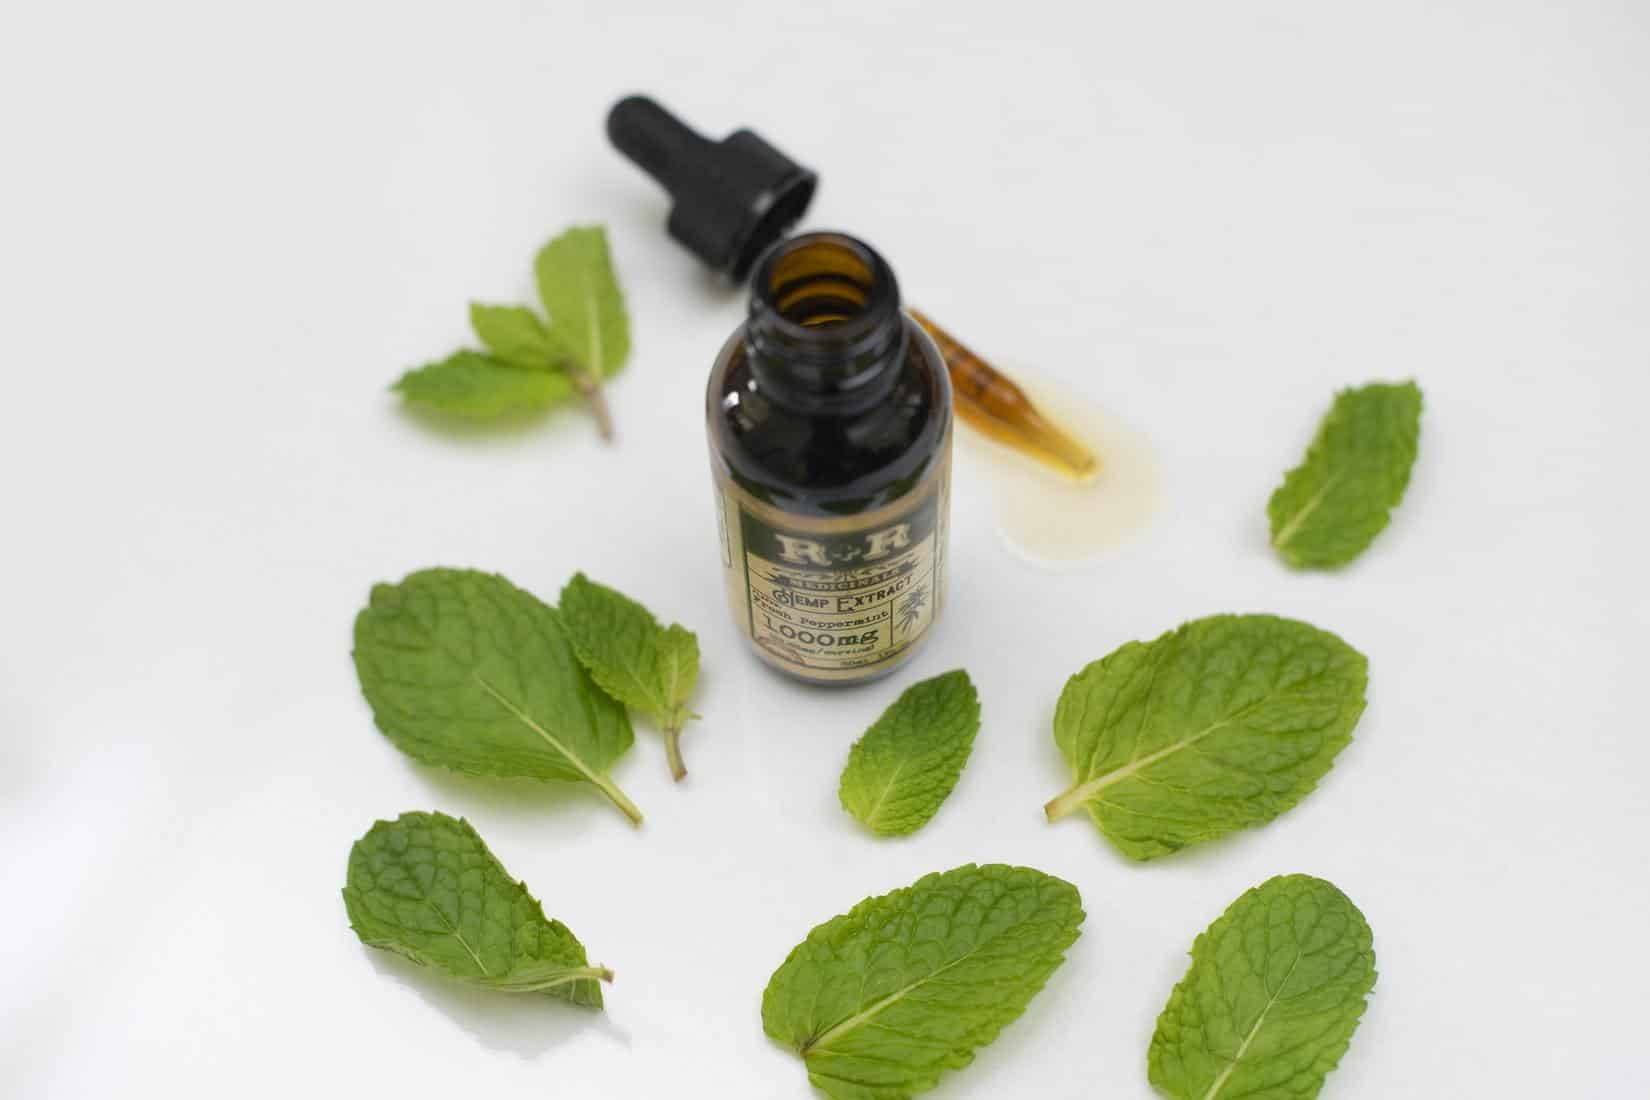 Cannabis oil in a bottle. How much does cannabis oil cost?